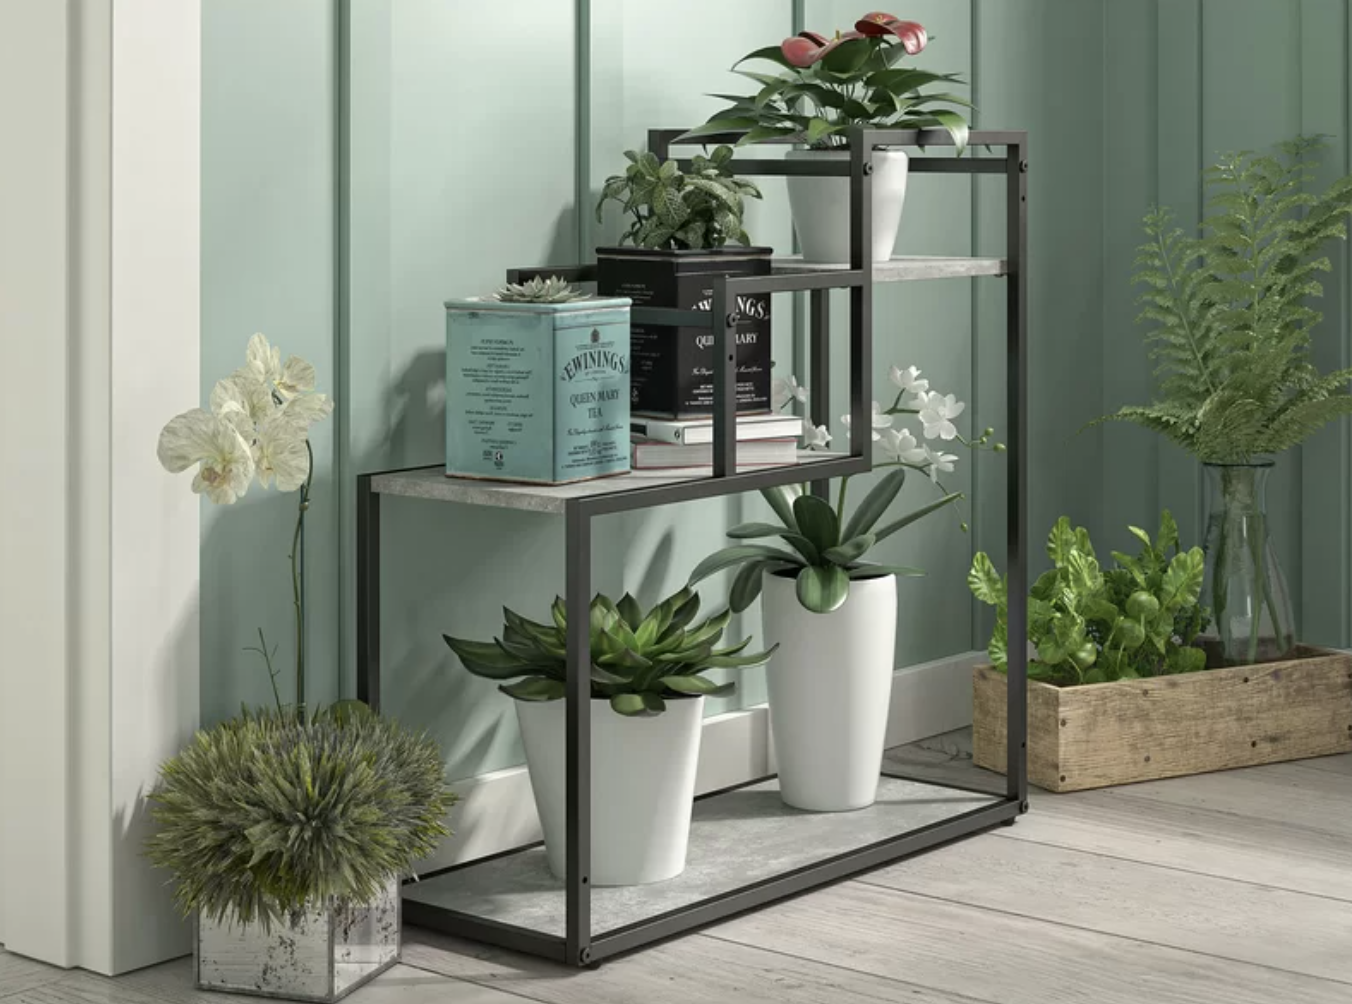 A multi-tiered plant stand with succulents, flowers, and more greenery